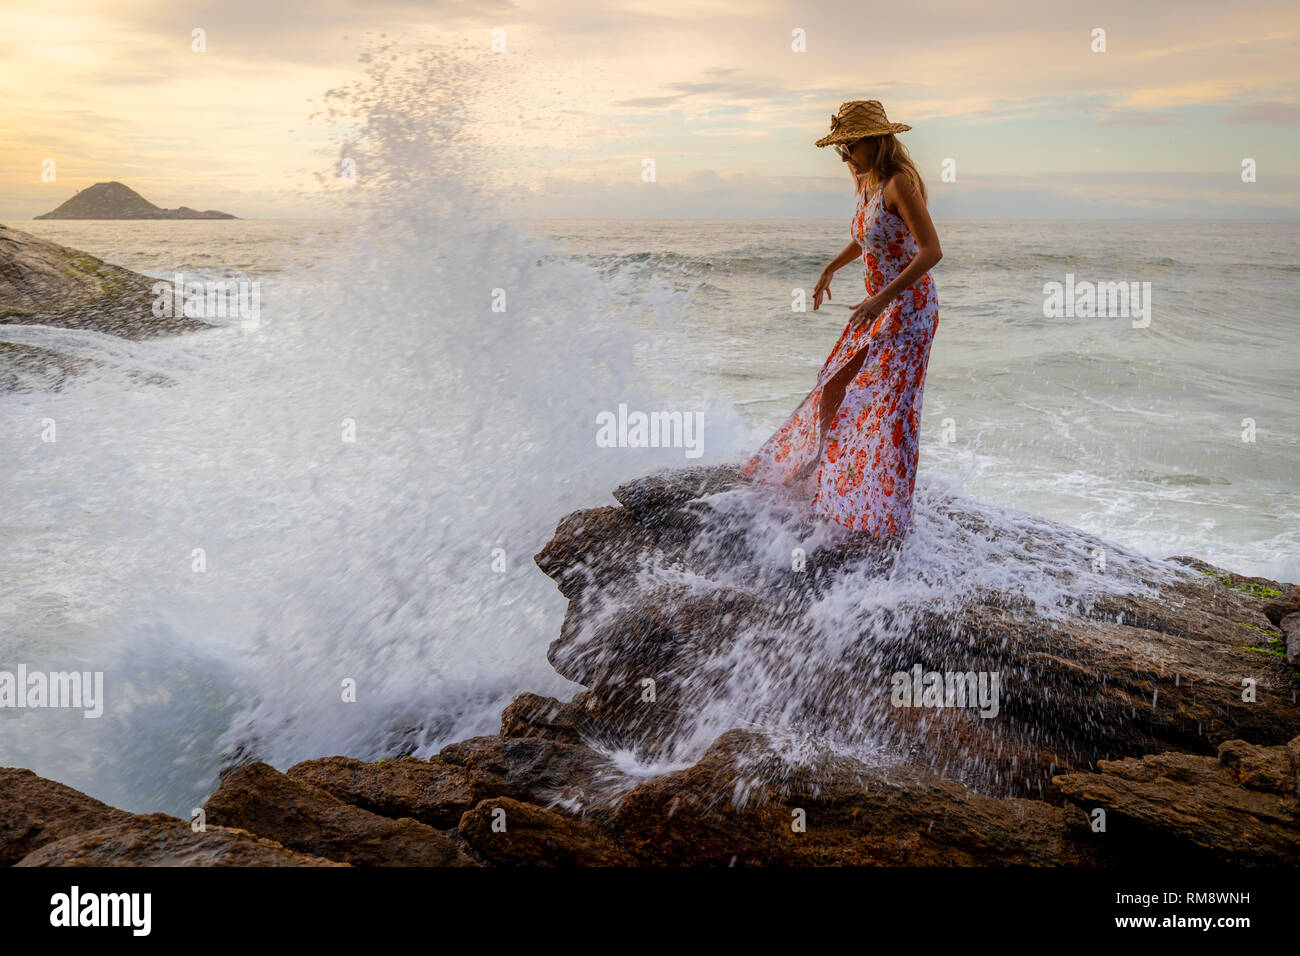 Beautiful slender woman with a hat and stylish dress standing on a rock at a beach where a forceful wave splashes violently around her - Stock Image